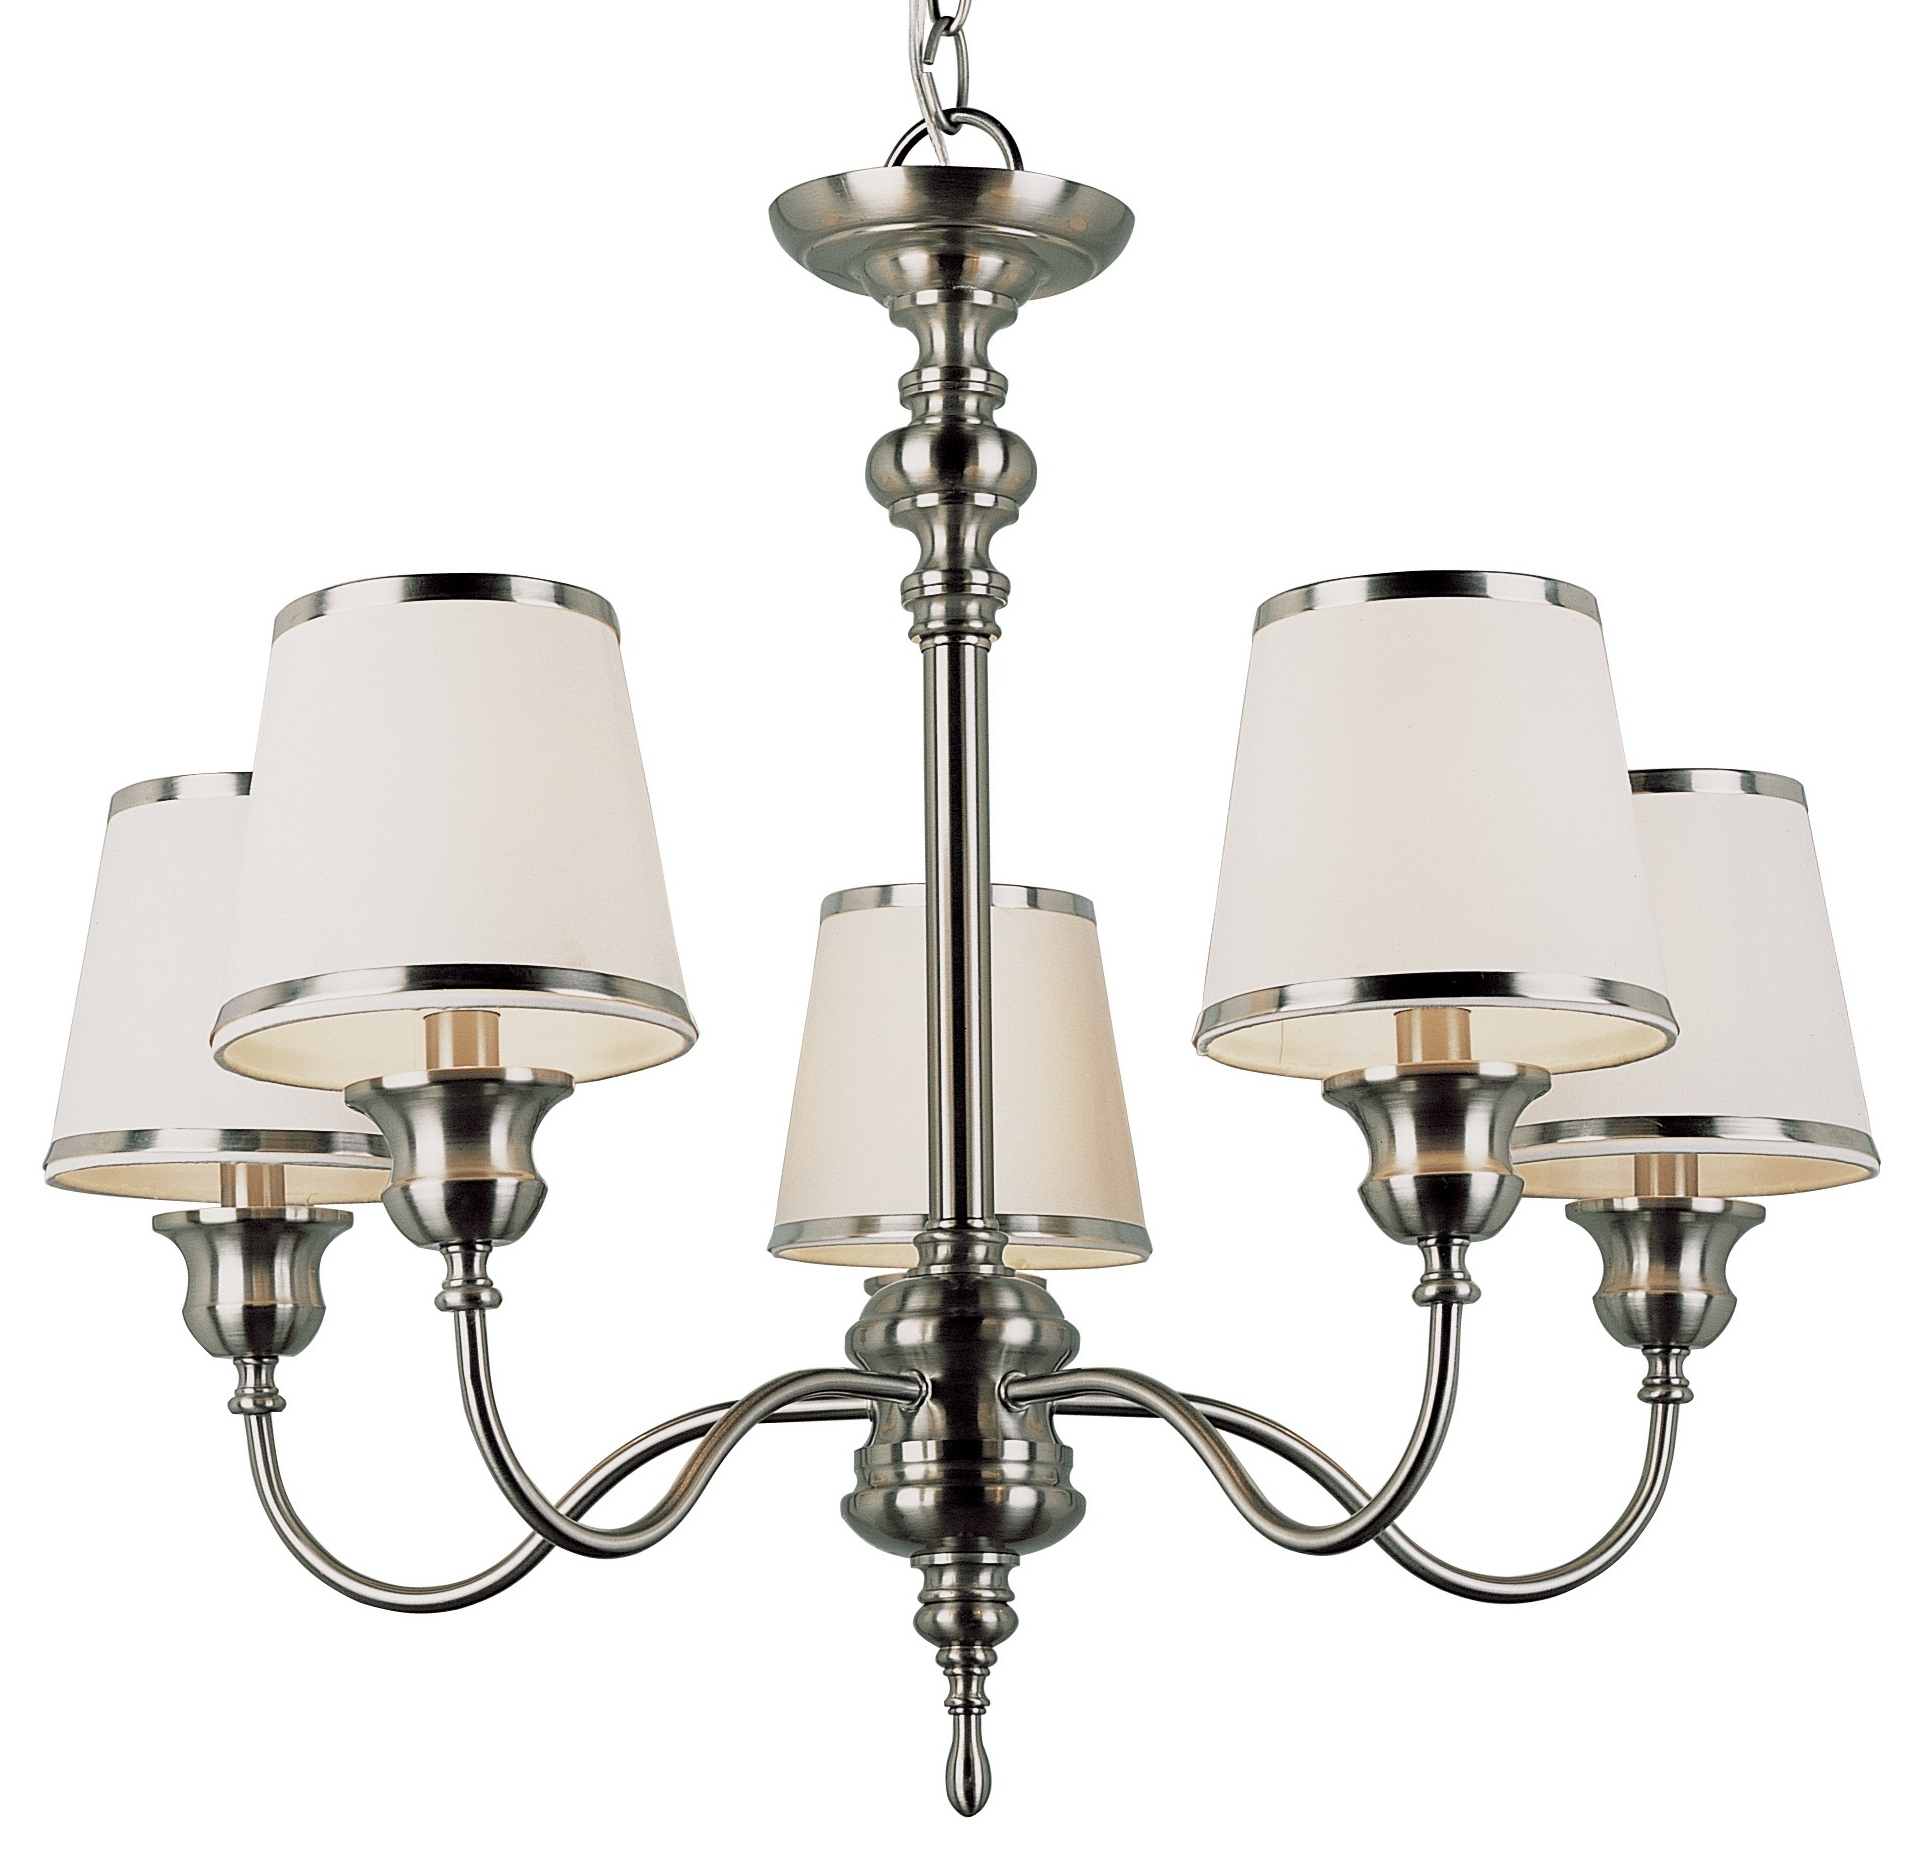 Fashionable Lampshades For Chandeliers Inside Chandeliers : Sheer Chandelier Lamp Shades Drum Mini Clip On (View 9 of 15)